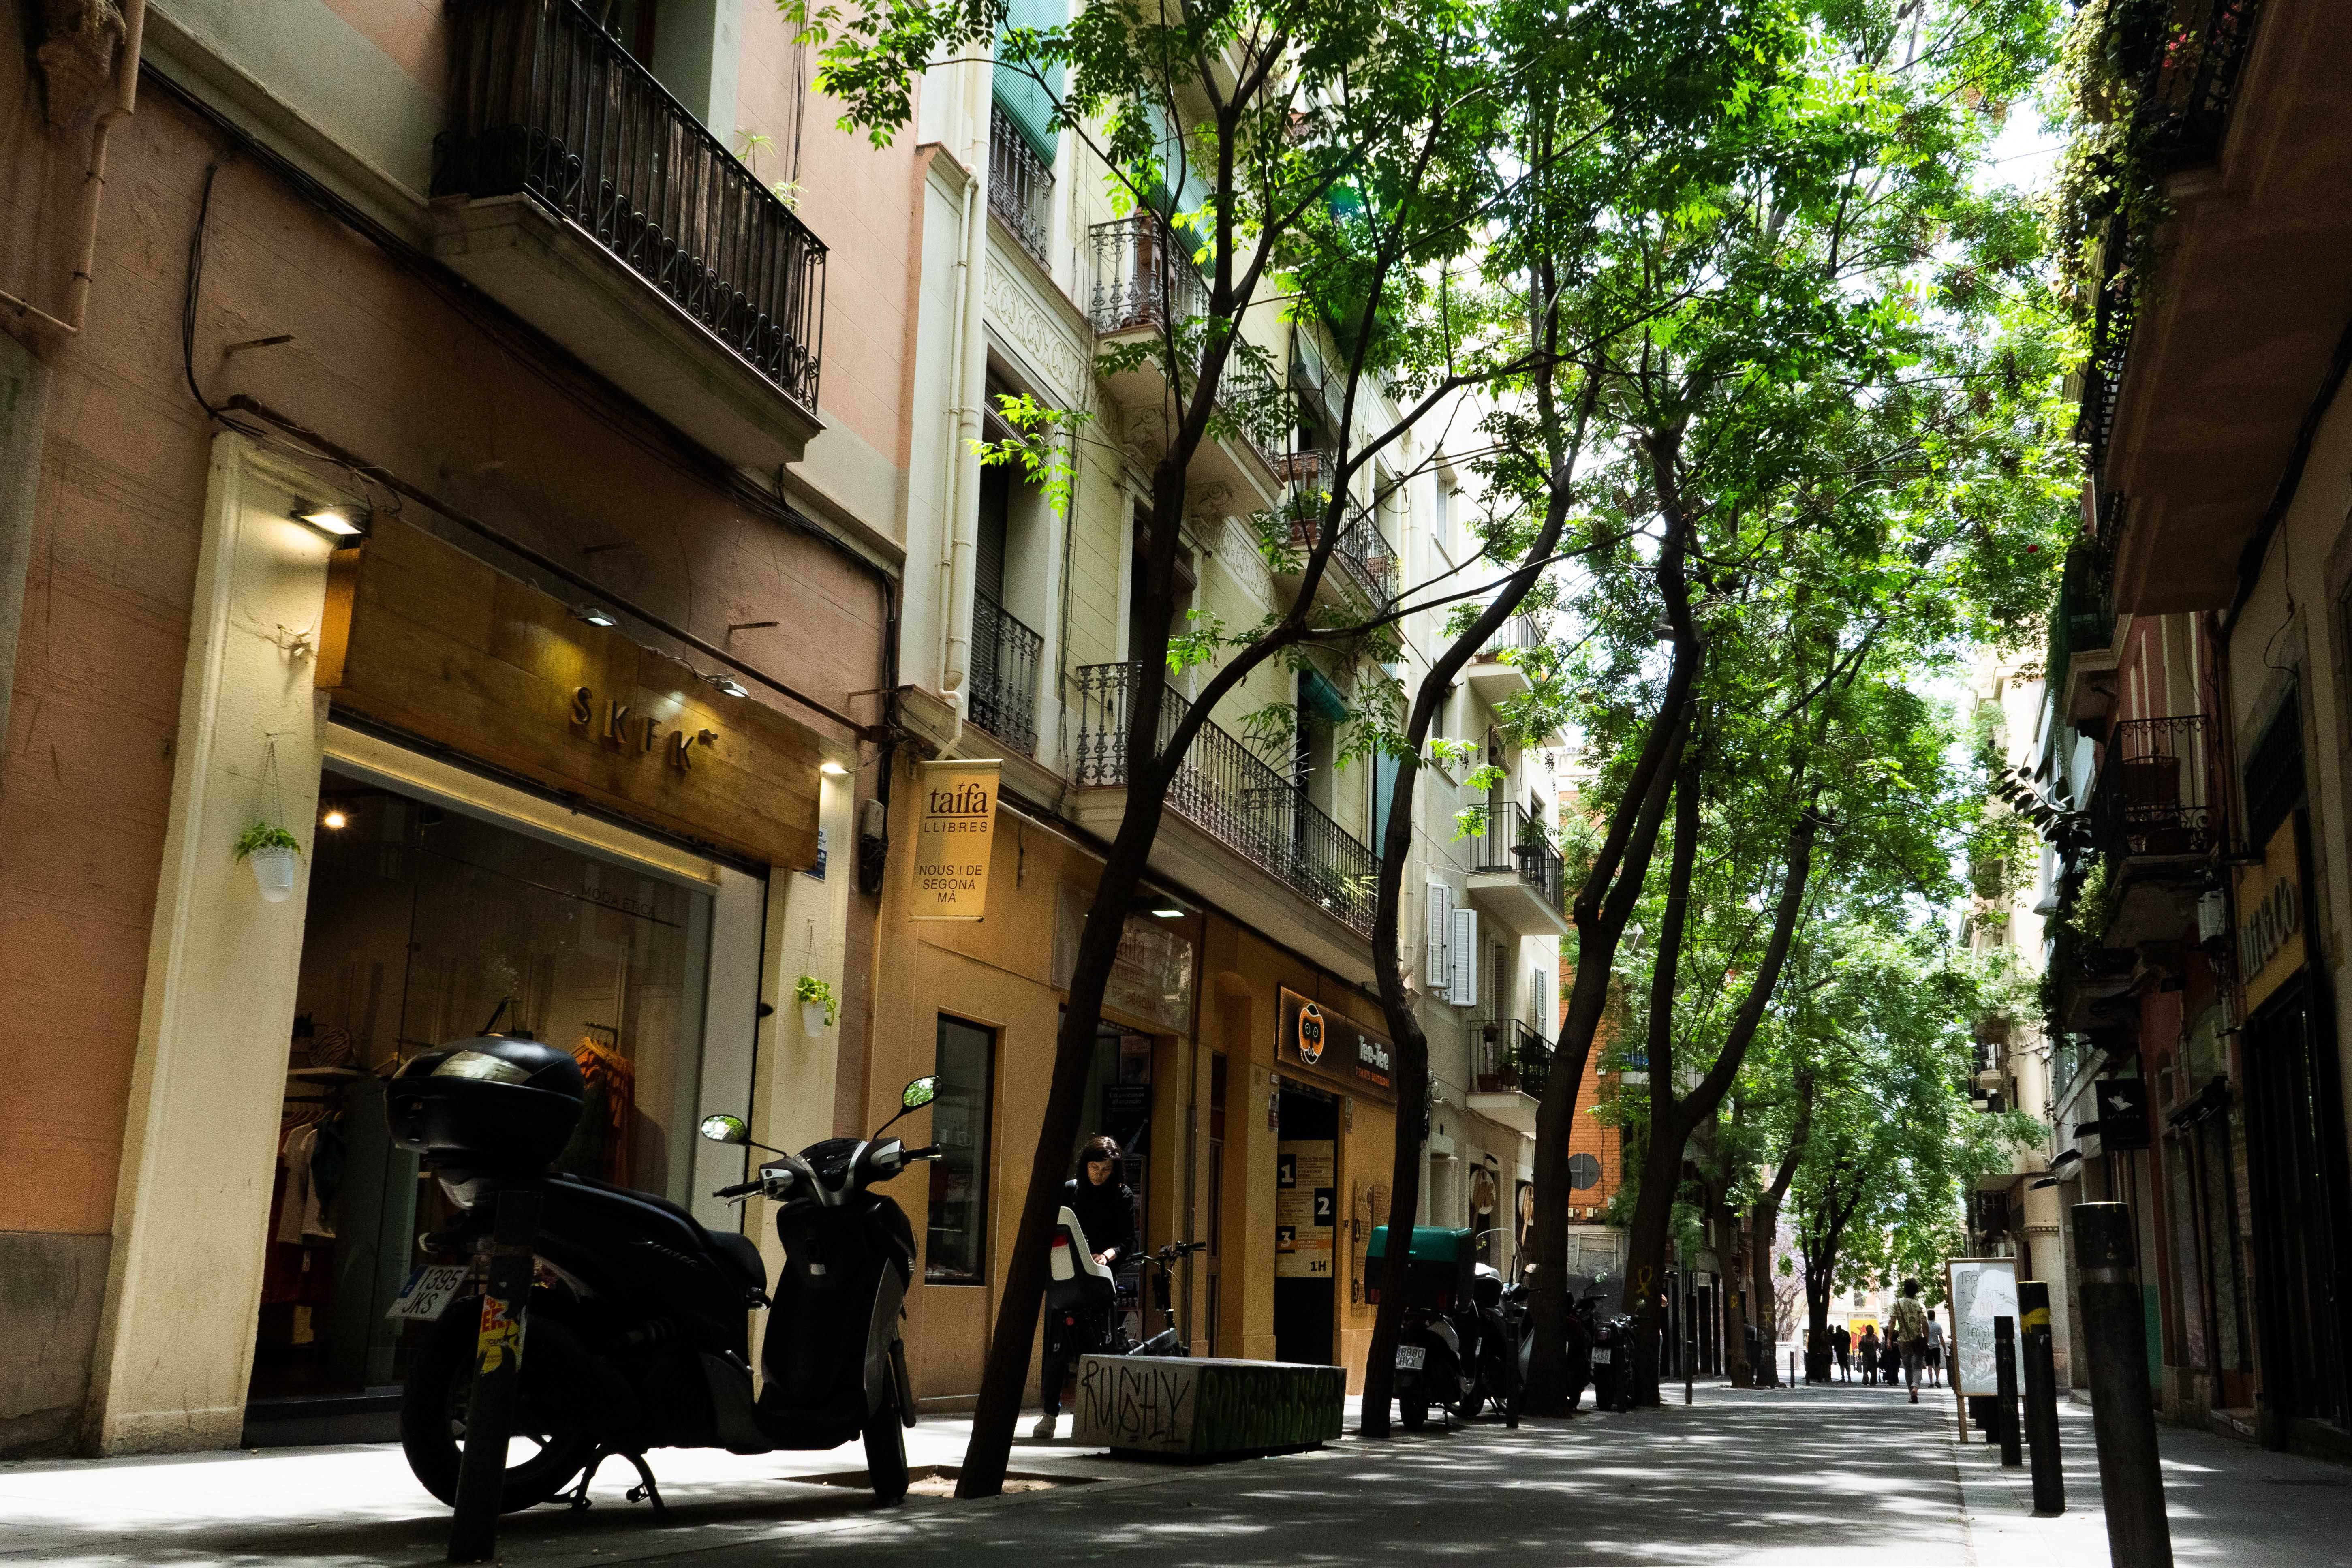 Carrer Verdi a store lined street with trees and bikes parked